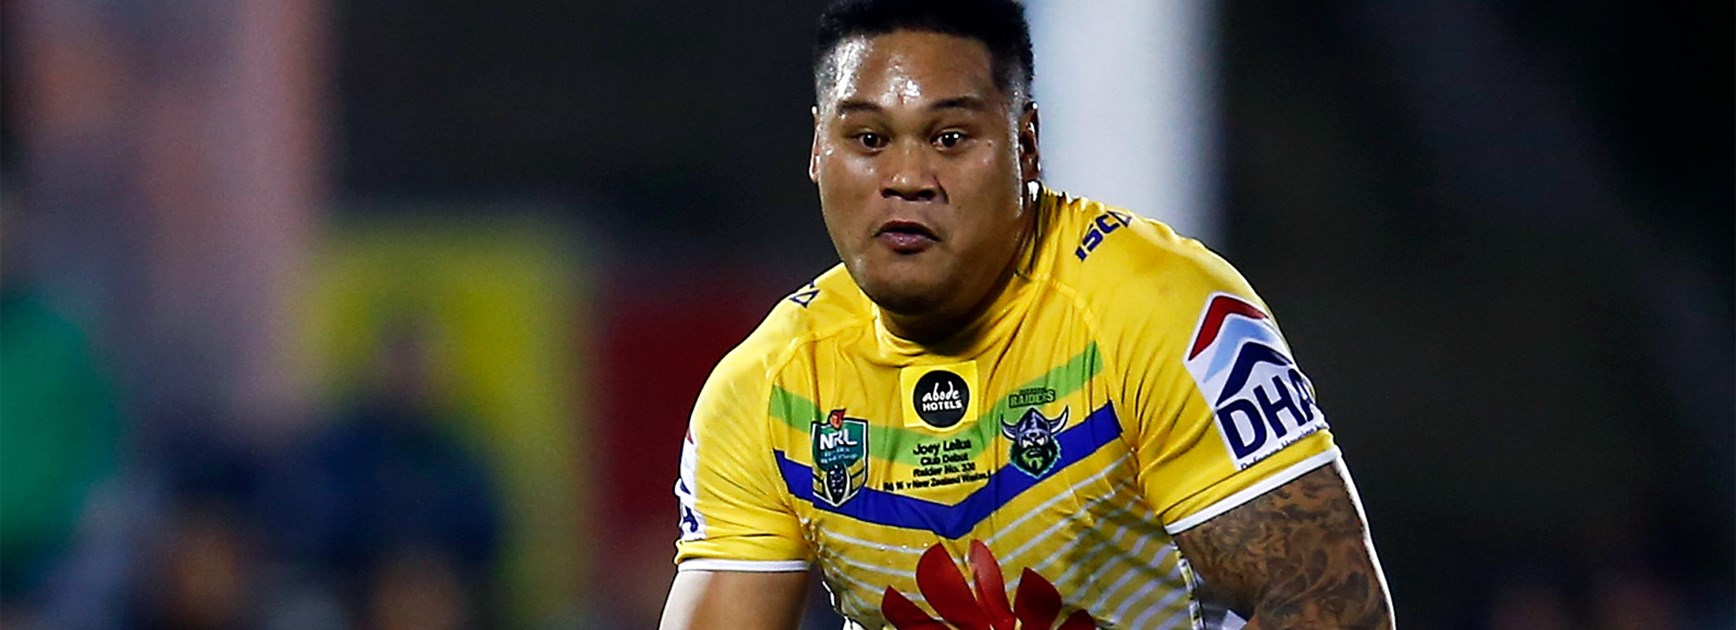 Mid-season signing Joseph Leilua made his Canberra Raiders debut on Saturday.